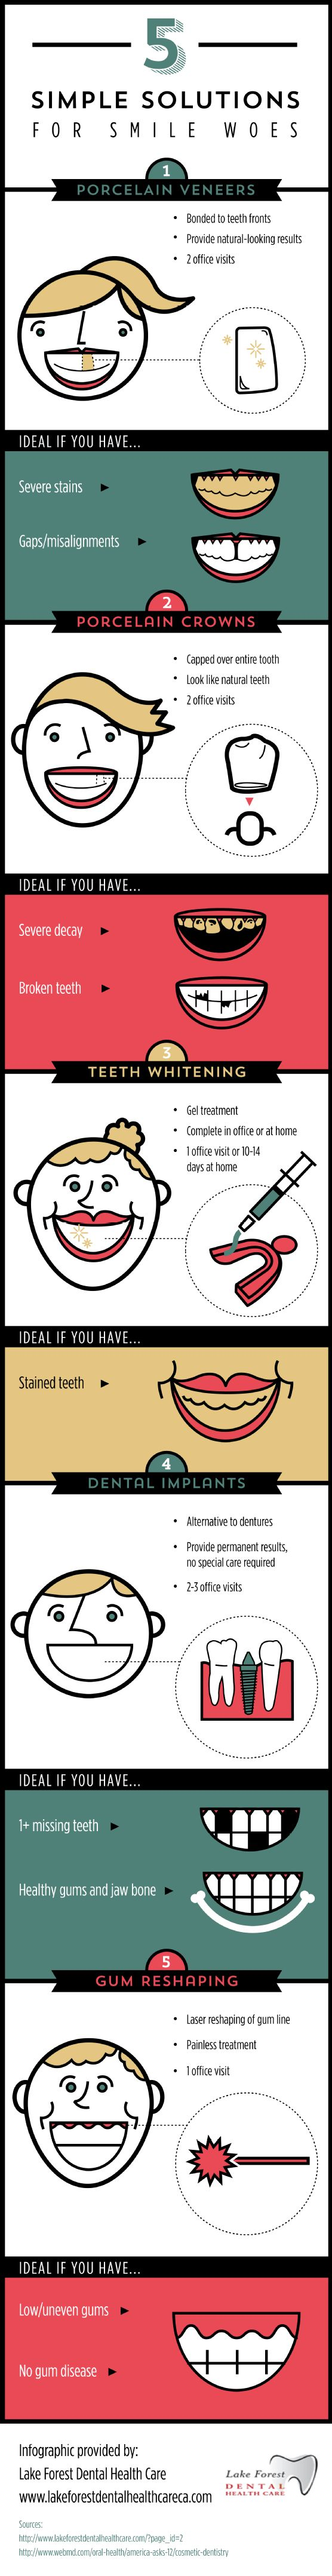 Teeth whitening is an amazing gel treatment that can be completed in the dentist's office or at home. Read about other dental treatments that can improve your smile by taking a look at this infographic from a cosmetic dentist in Lake Forest.